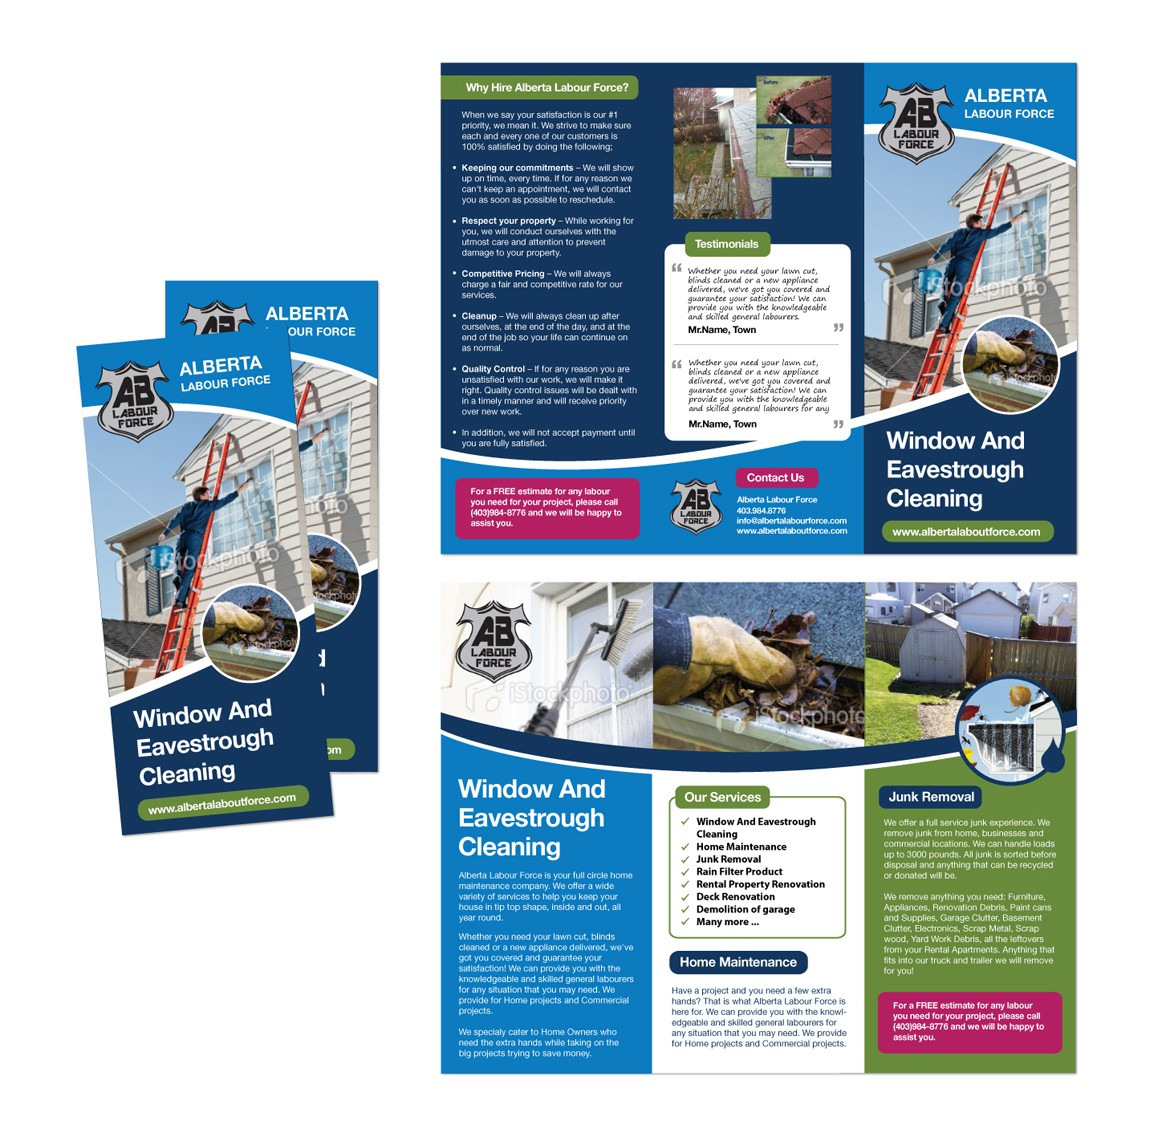 Help Alberta Labour Force with a new brochure design